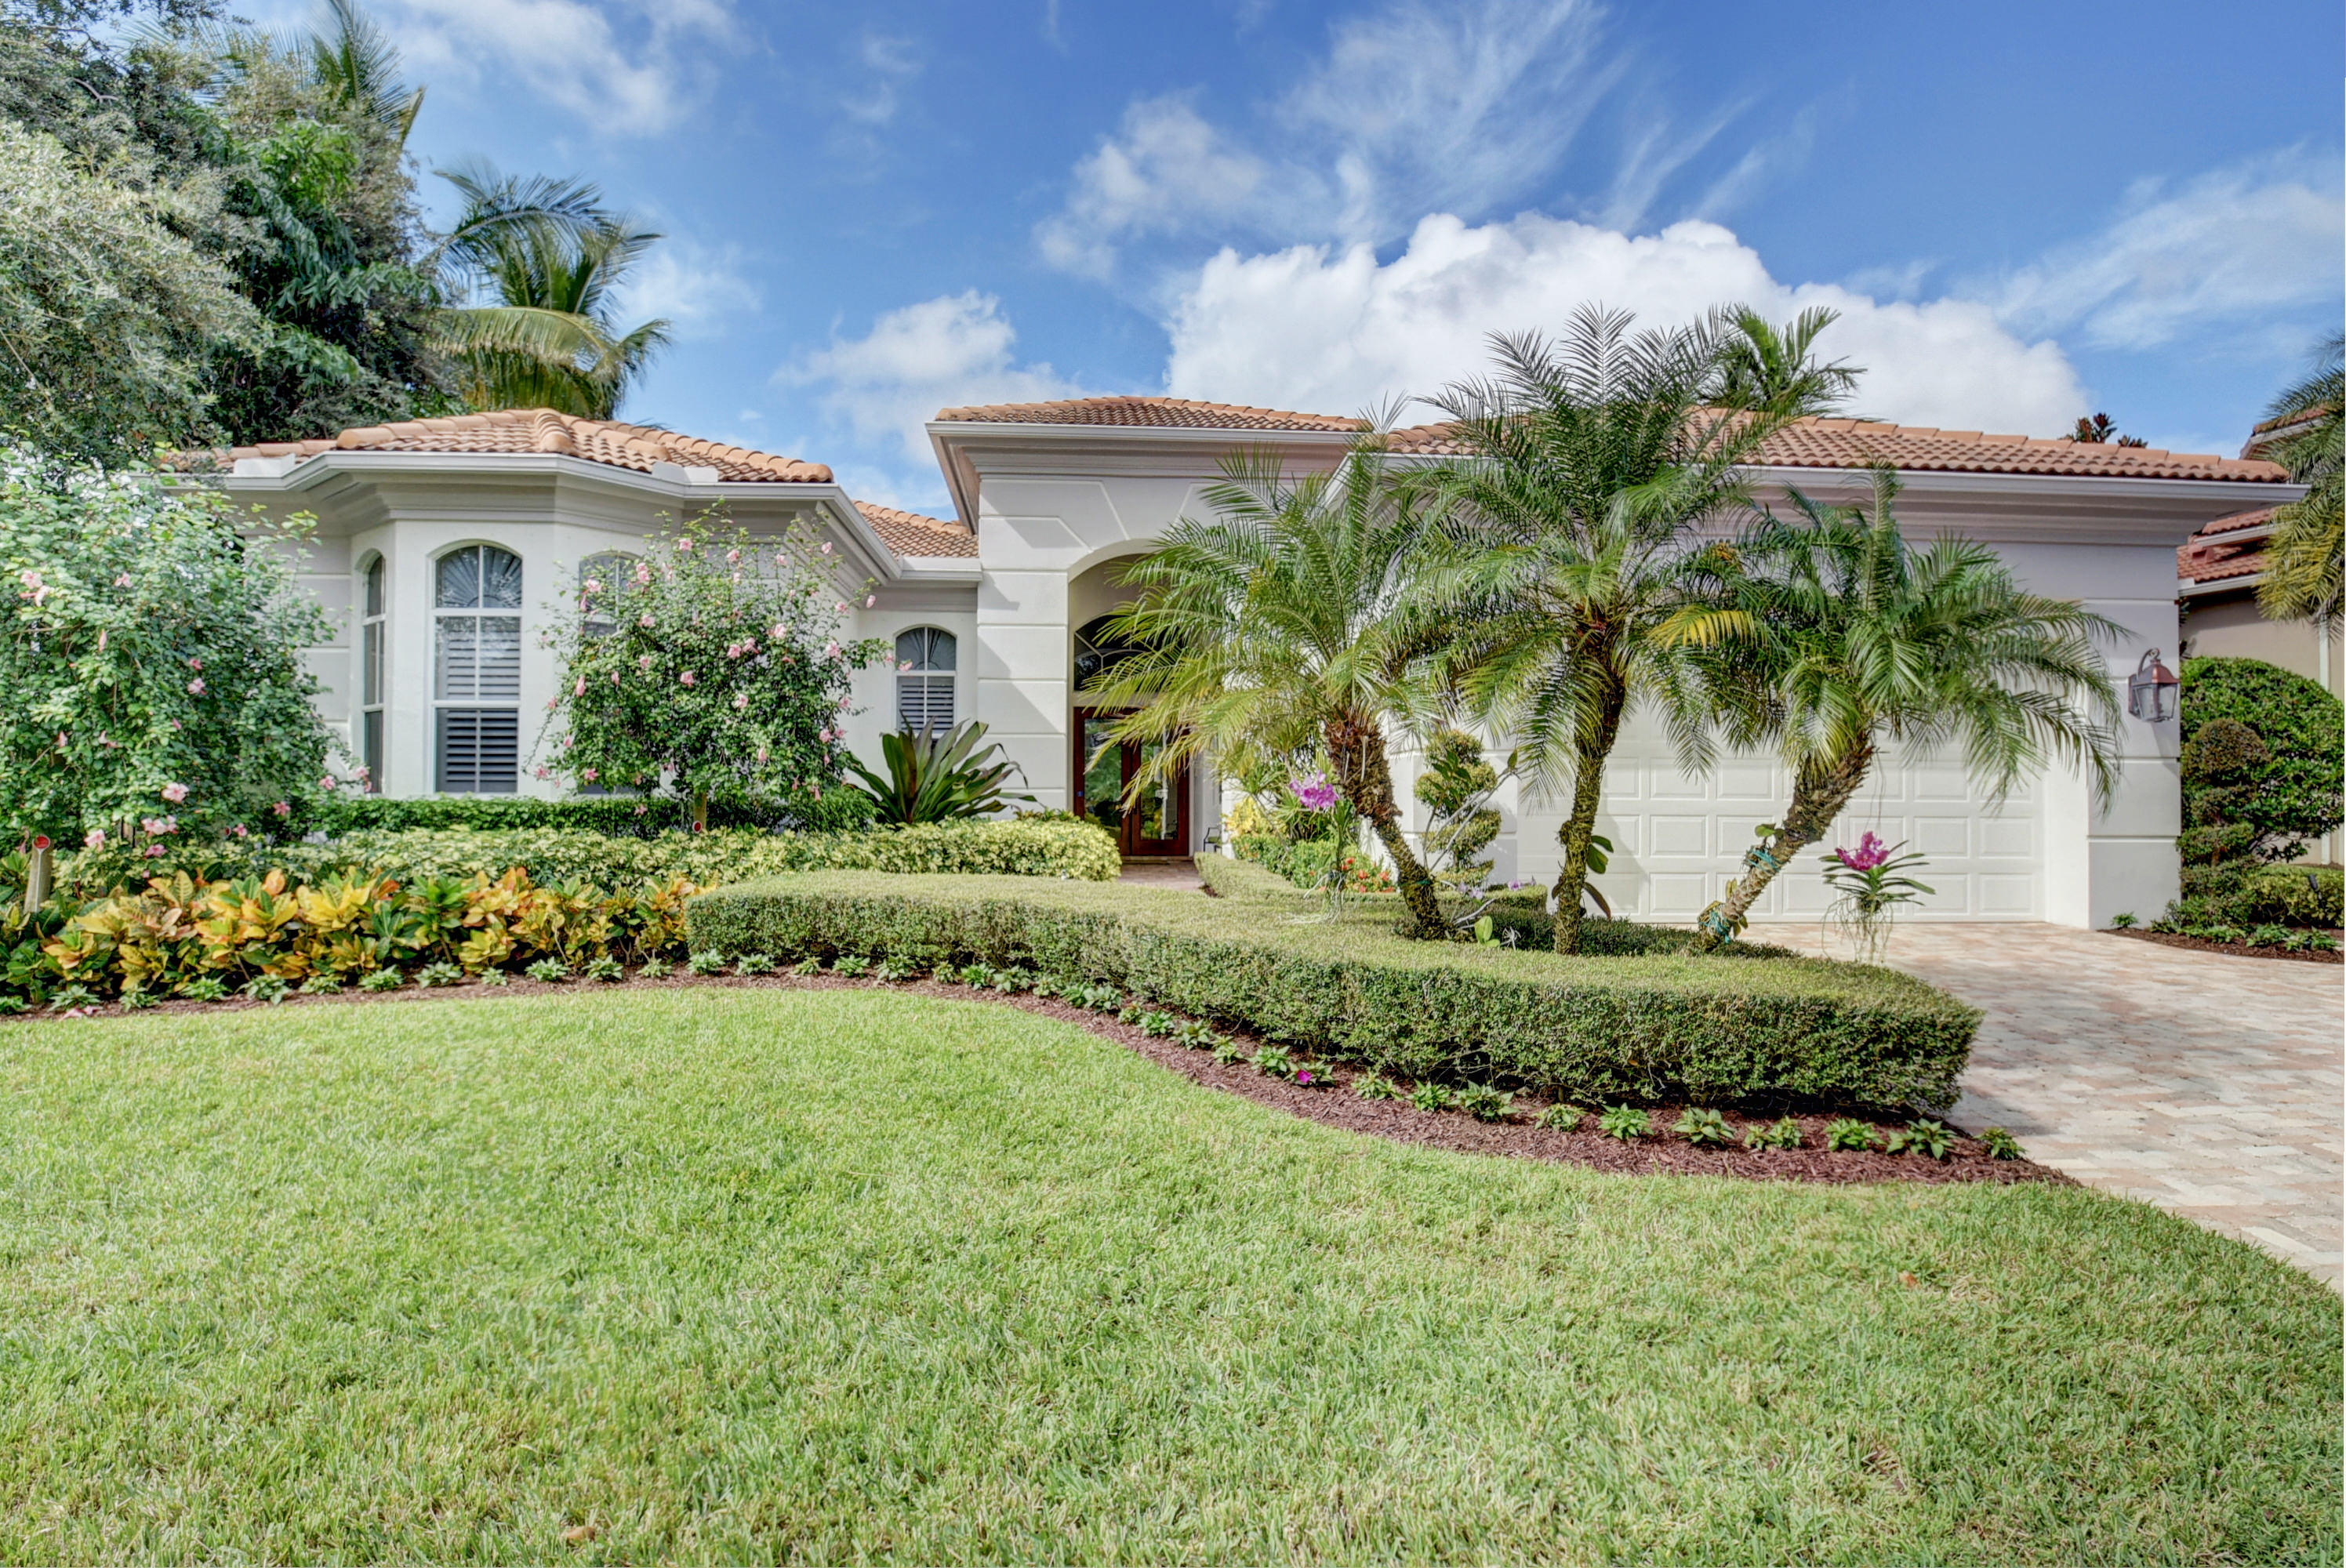 New Home for sale at 705 Cote Azur Drive in Palm Beach Gardens